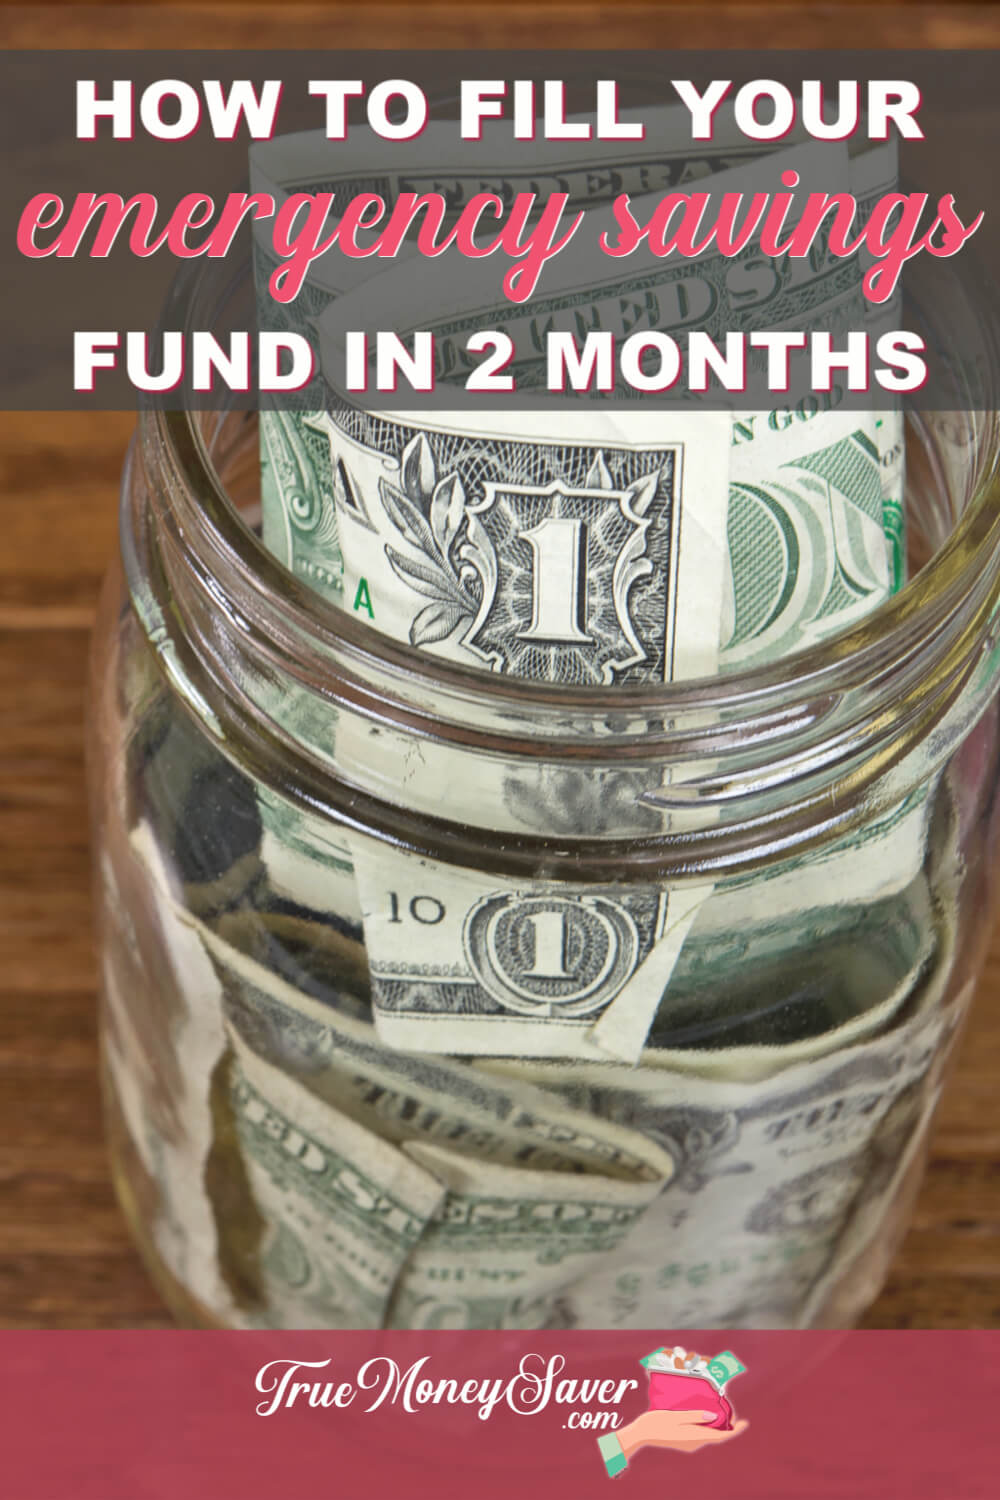 How To Fill Your Emergency Savings Fund In Just 2 Months